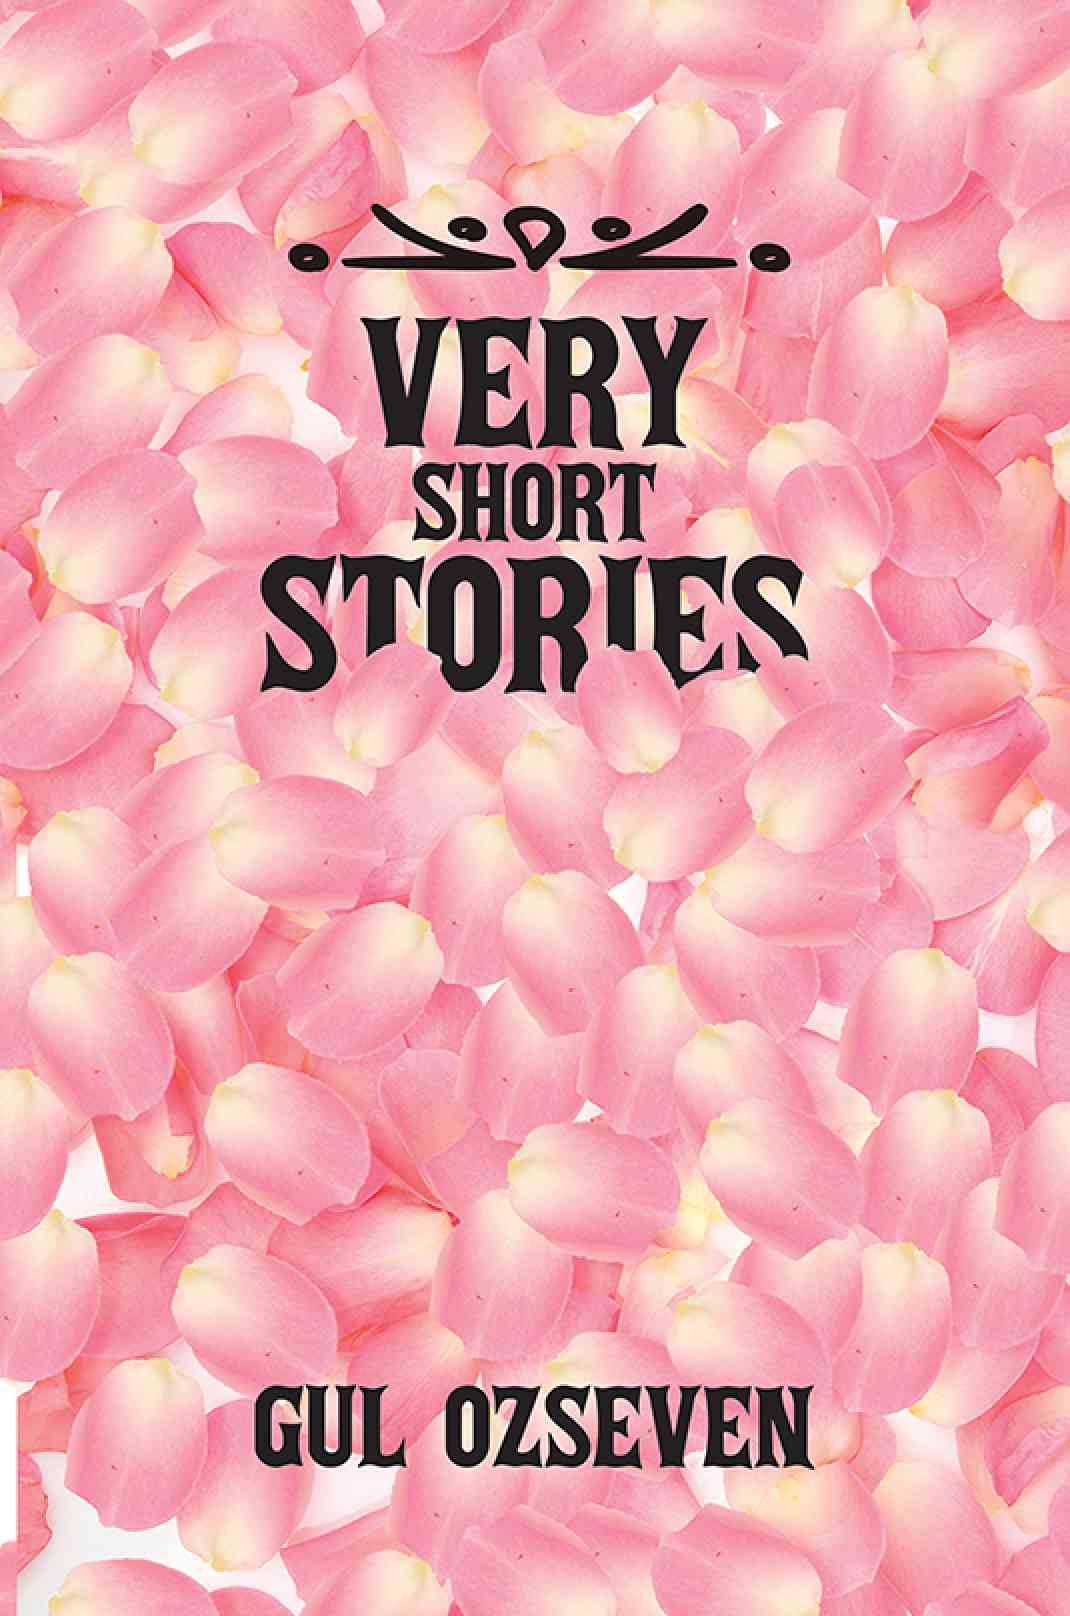 Very Short Stories | Book| Austin Macauley Publishers